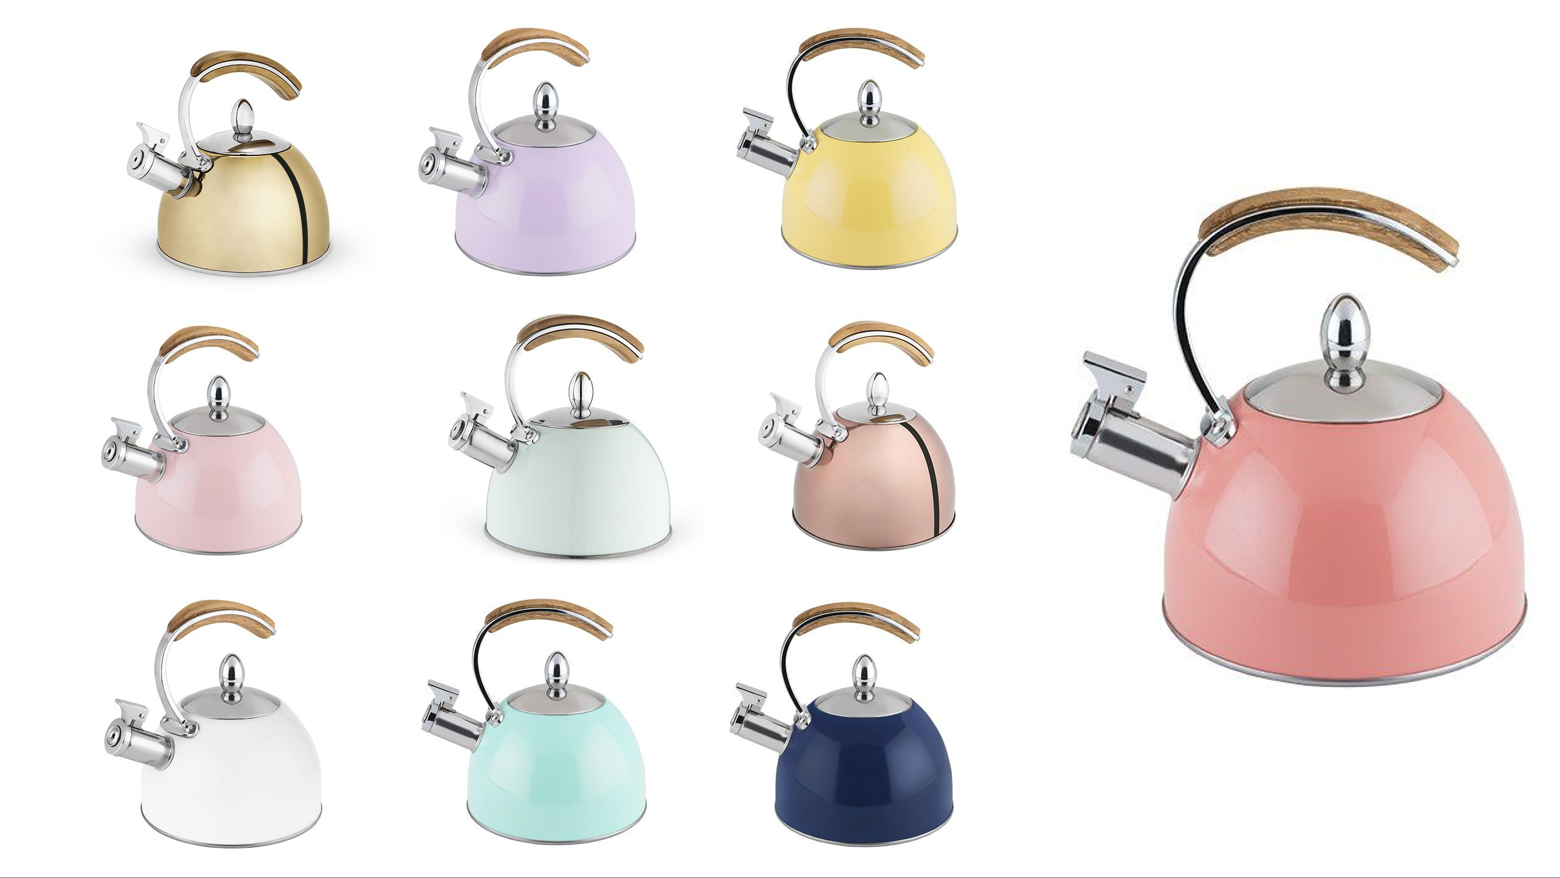 Presley™ Tea Kettle by Pinky Up® - Assorted Colors